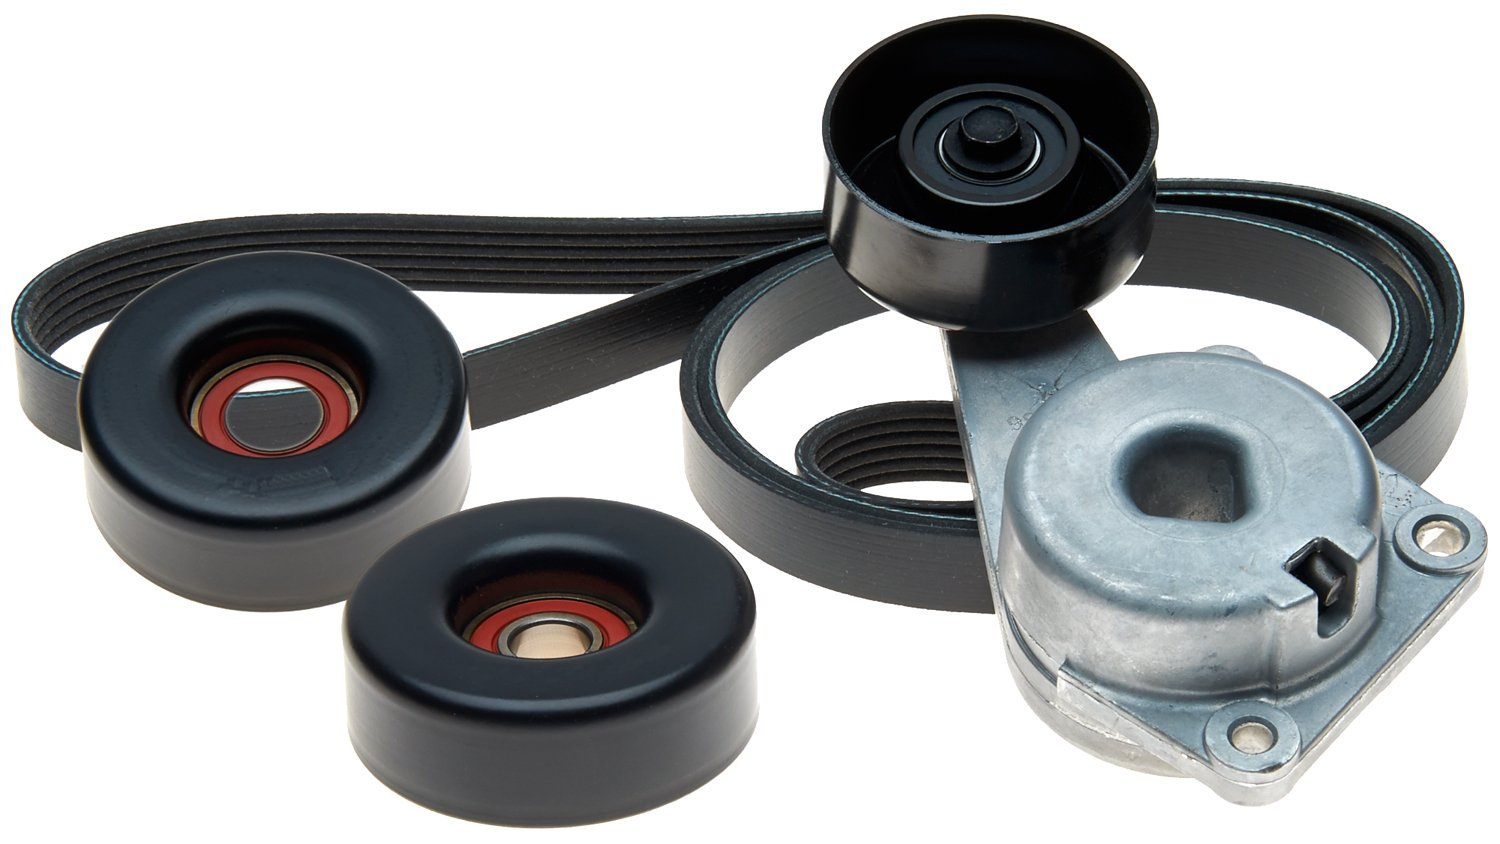 ACDelco ACK061025 Professional Automatic Belt Tensioner and Pulley Kit with Tensioner and Belt Pulleys